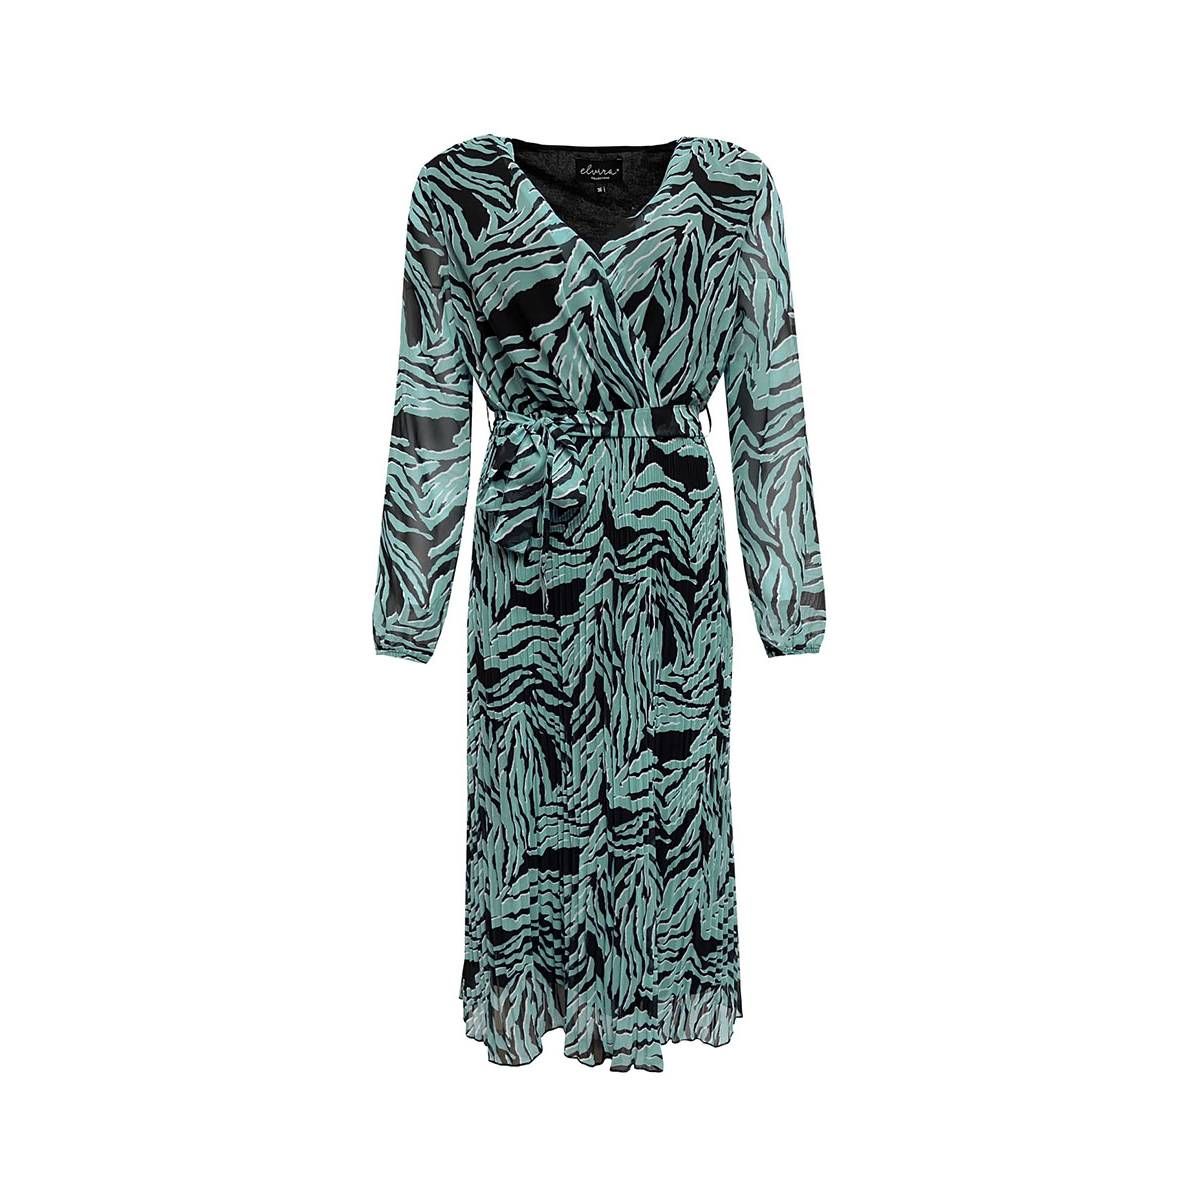 Elvira E1 21-015 DRESS FIEN PLISSE Groen